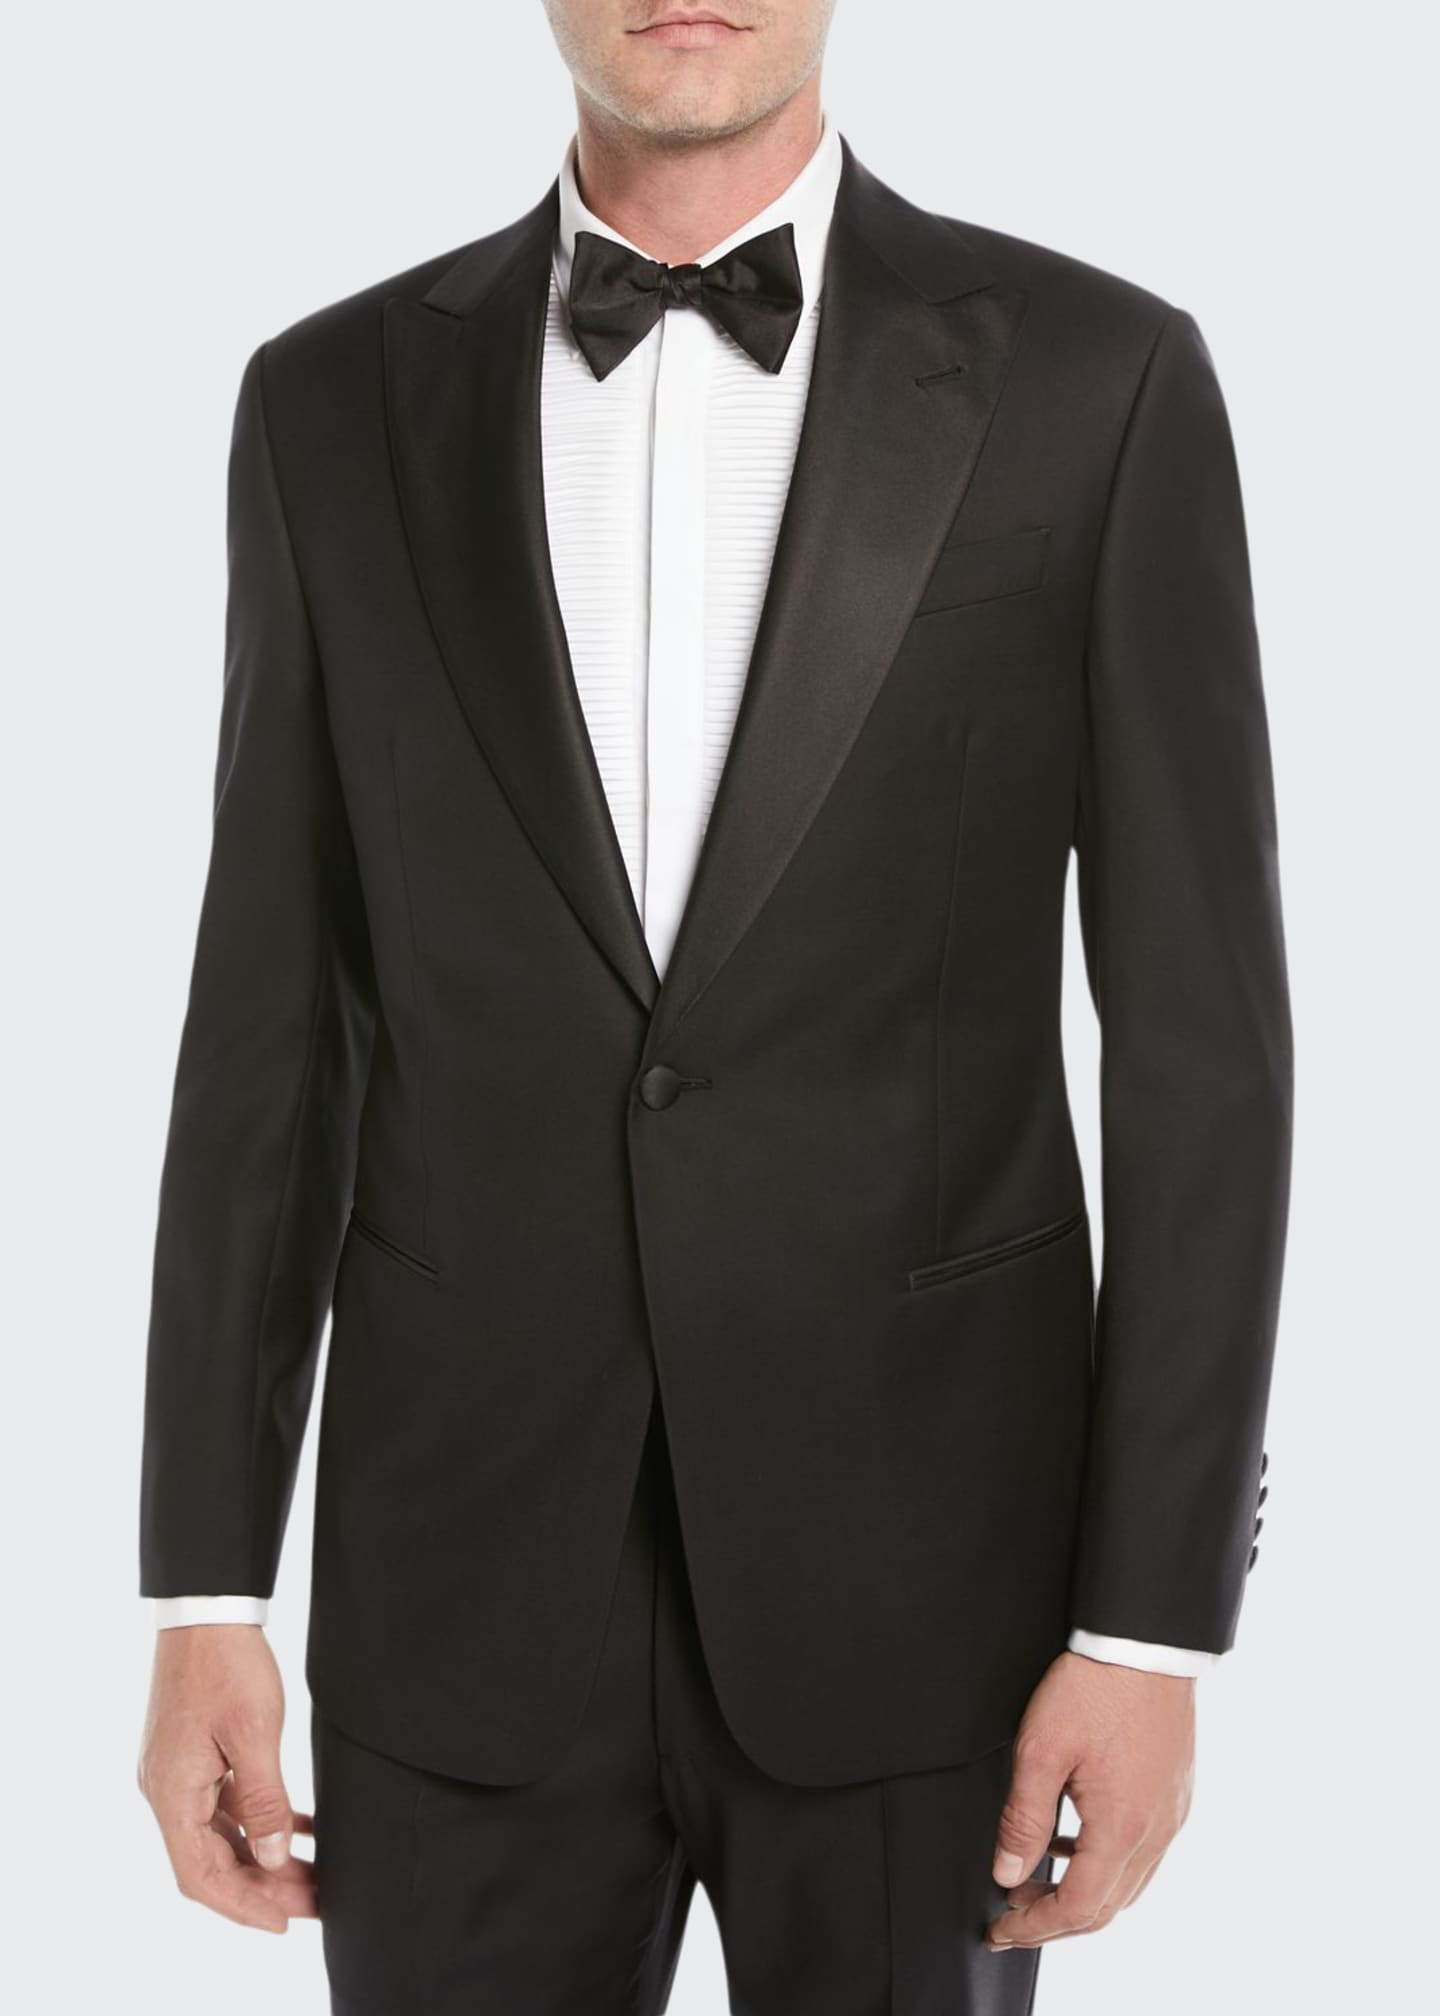 Emporio Armani Men's Super 130s Wool Two-Piece Tuxedo